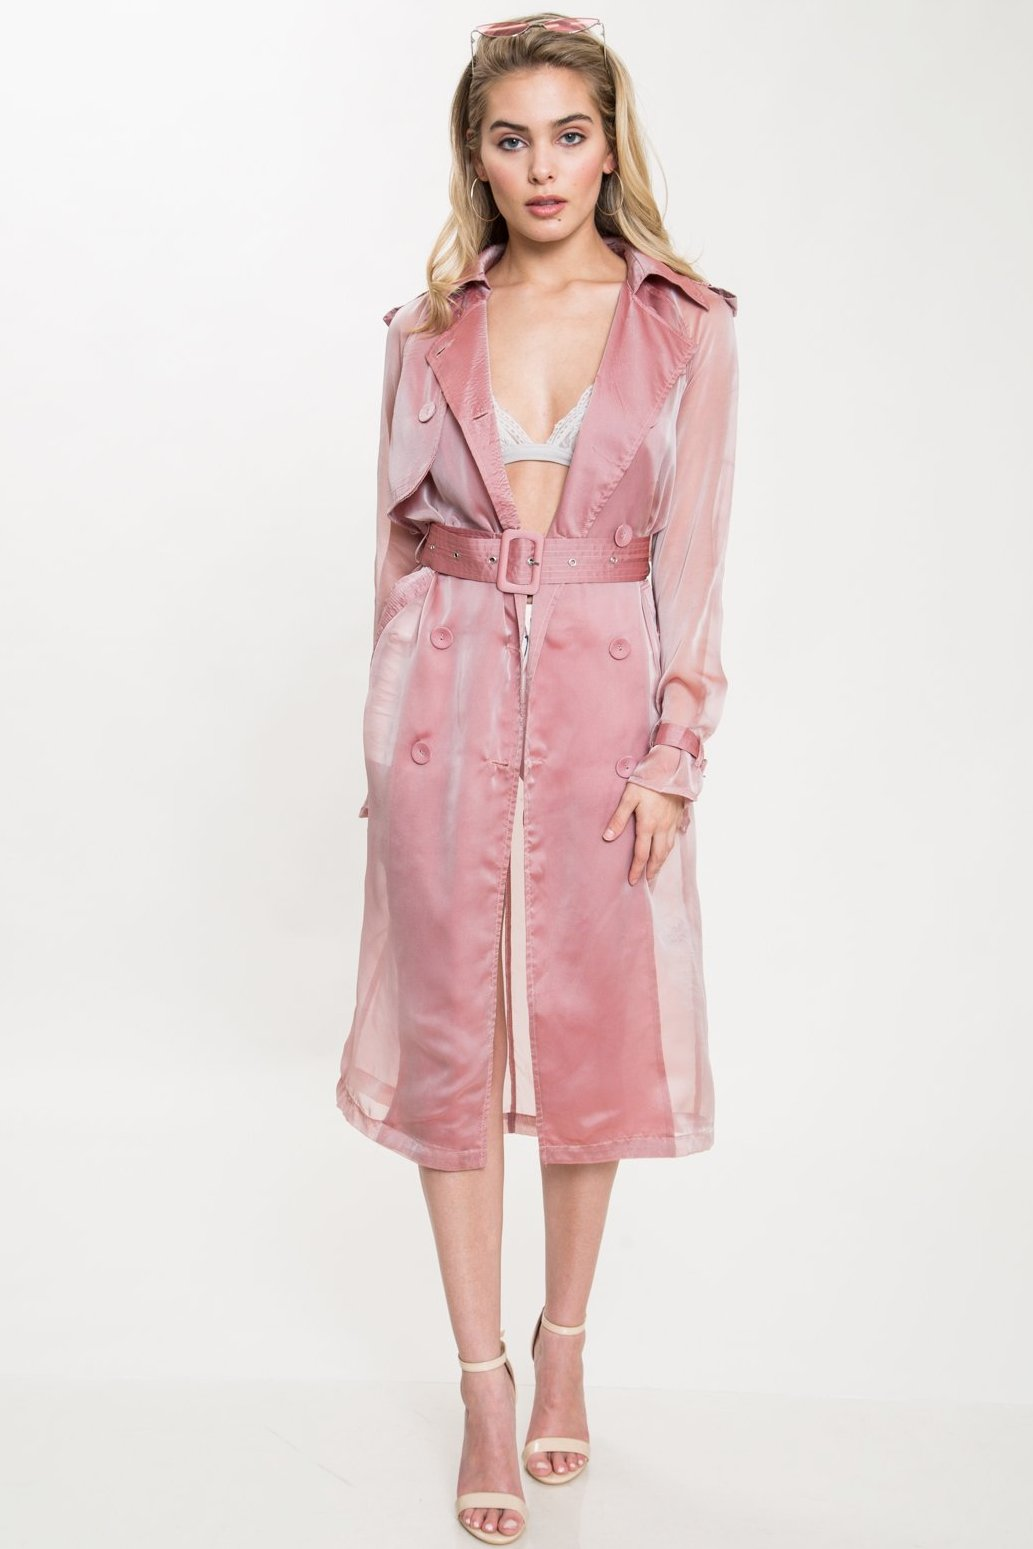 Yana Sheer Organza Trench Coat - Geegeebae - L'autiste - Front view 2